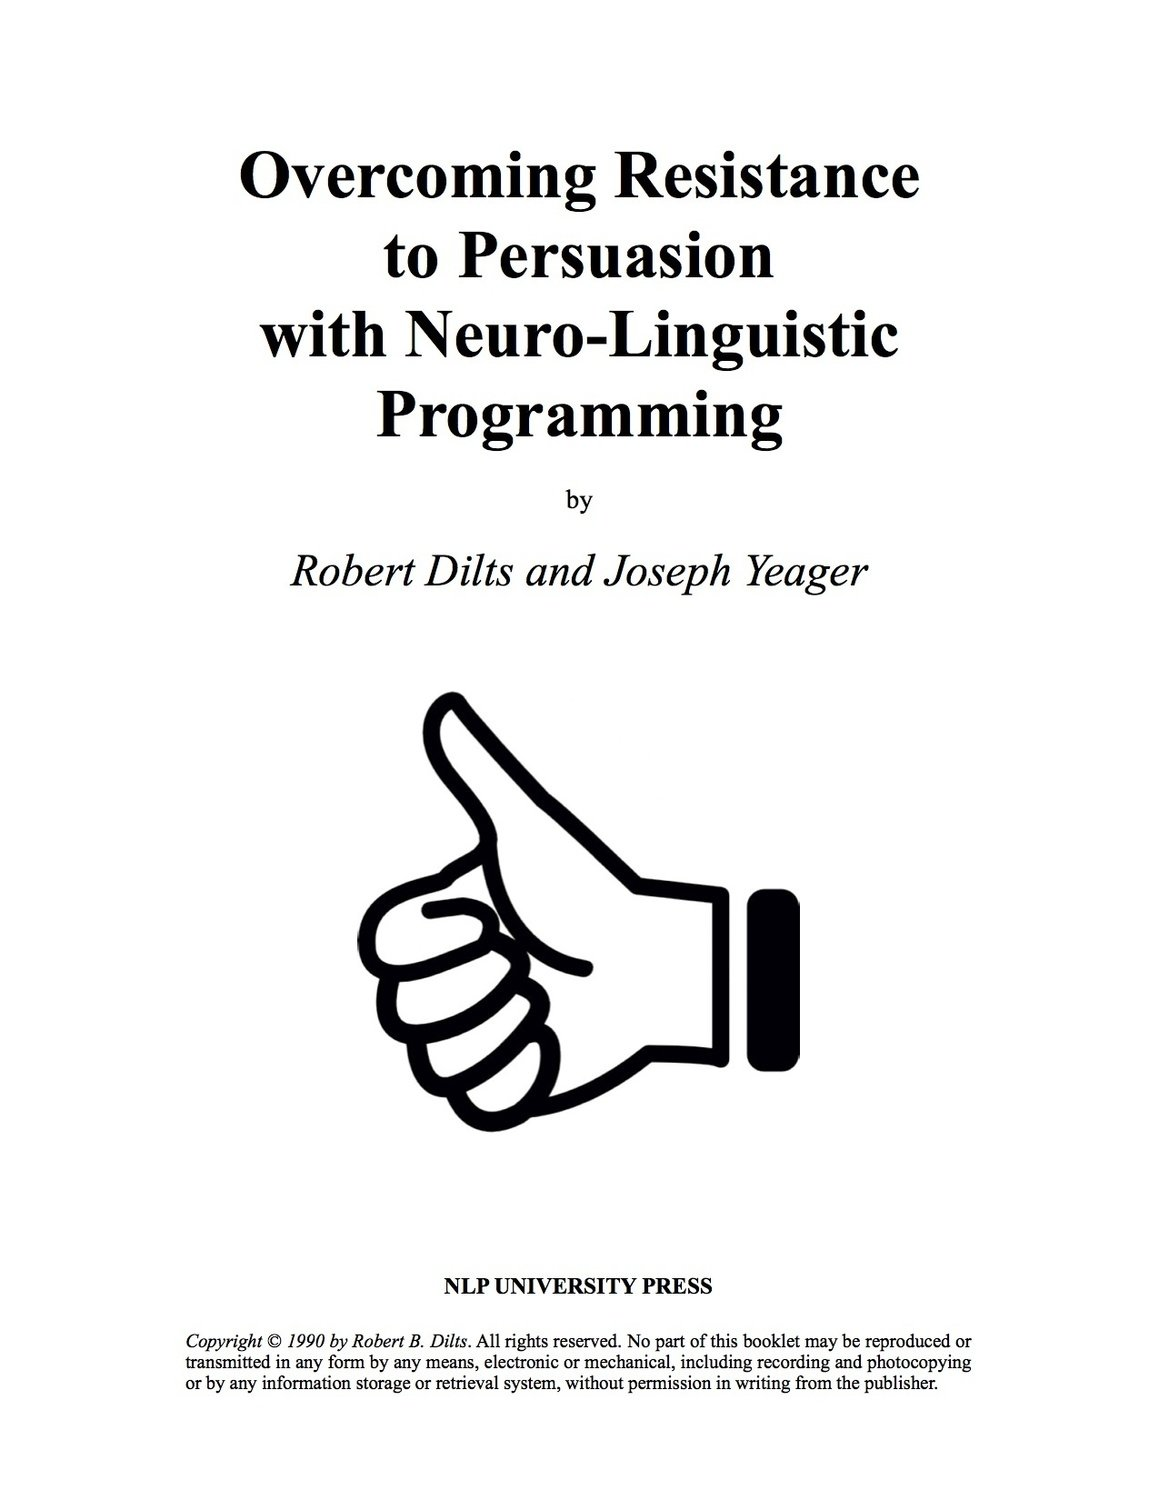 Overcoming Resistance to Persuasion with Neuro-Linguistic Programming [Booklet]